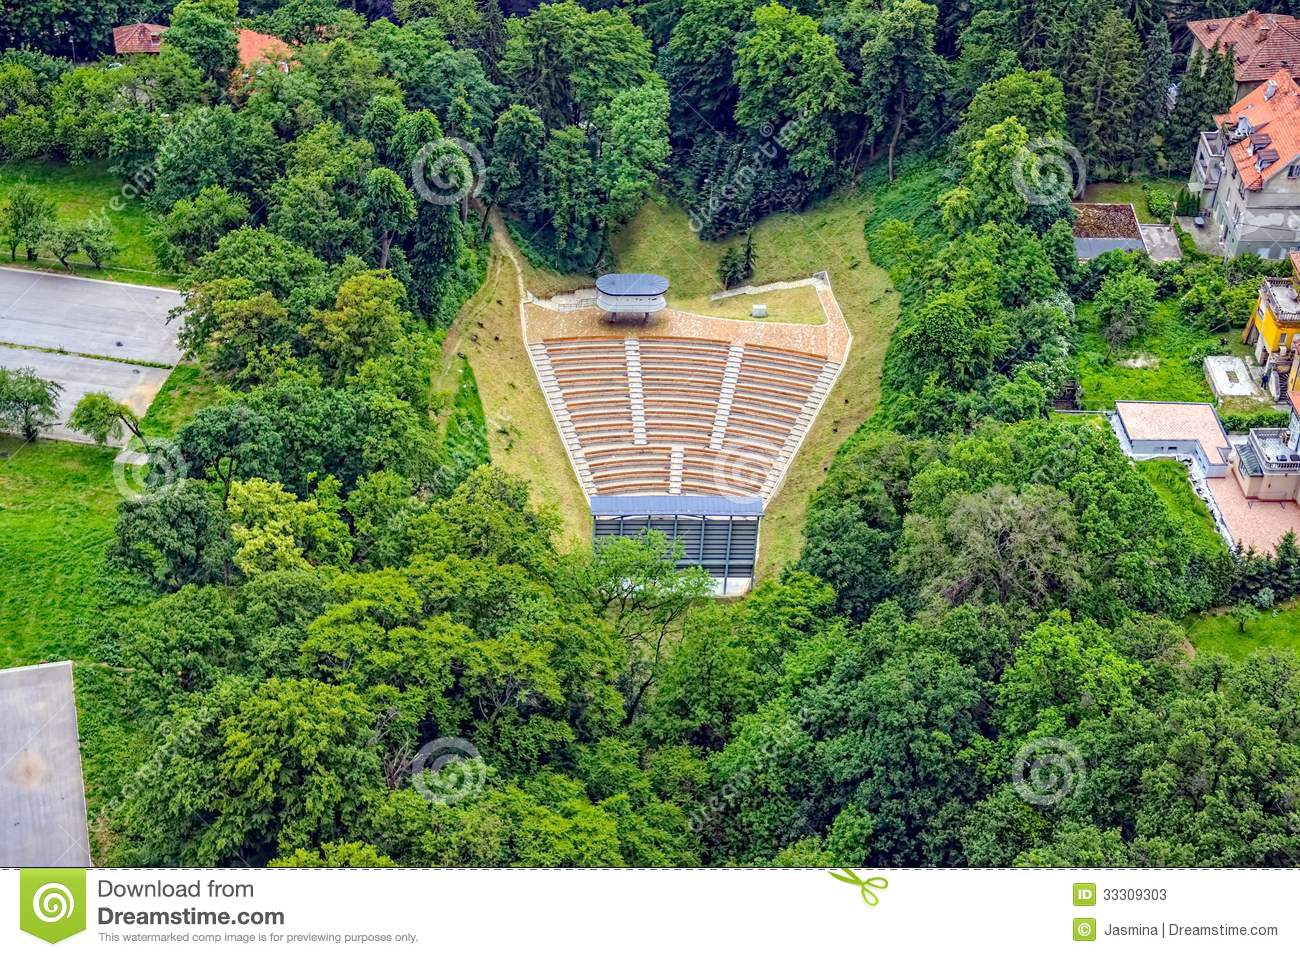 Open Air Theatre Stock Photos - Image: 33309303